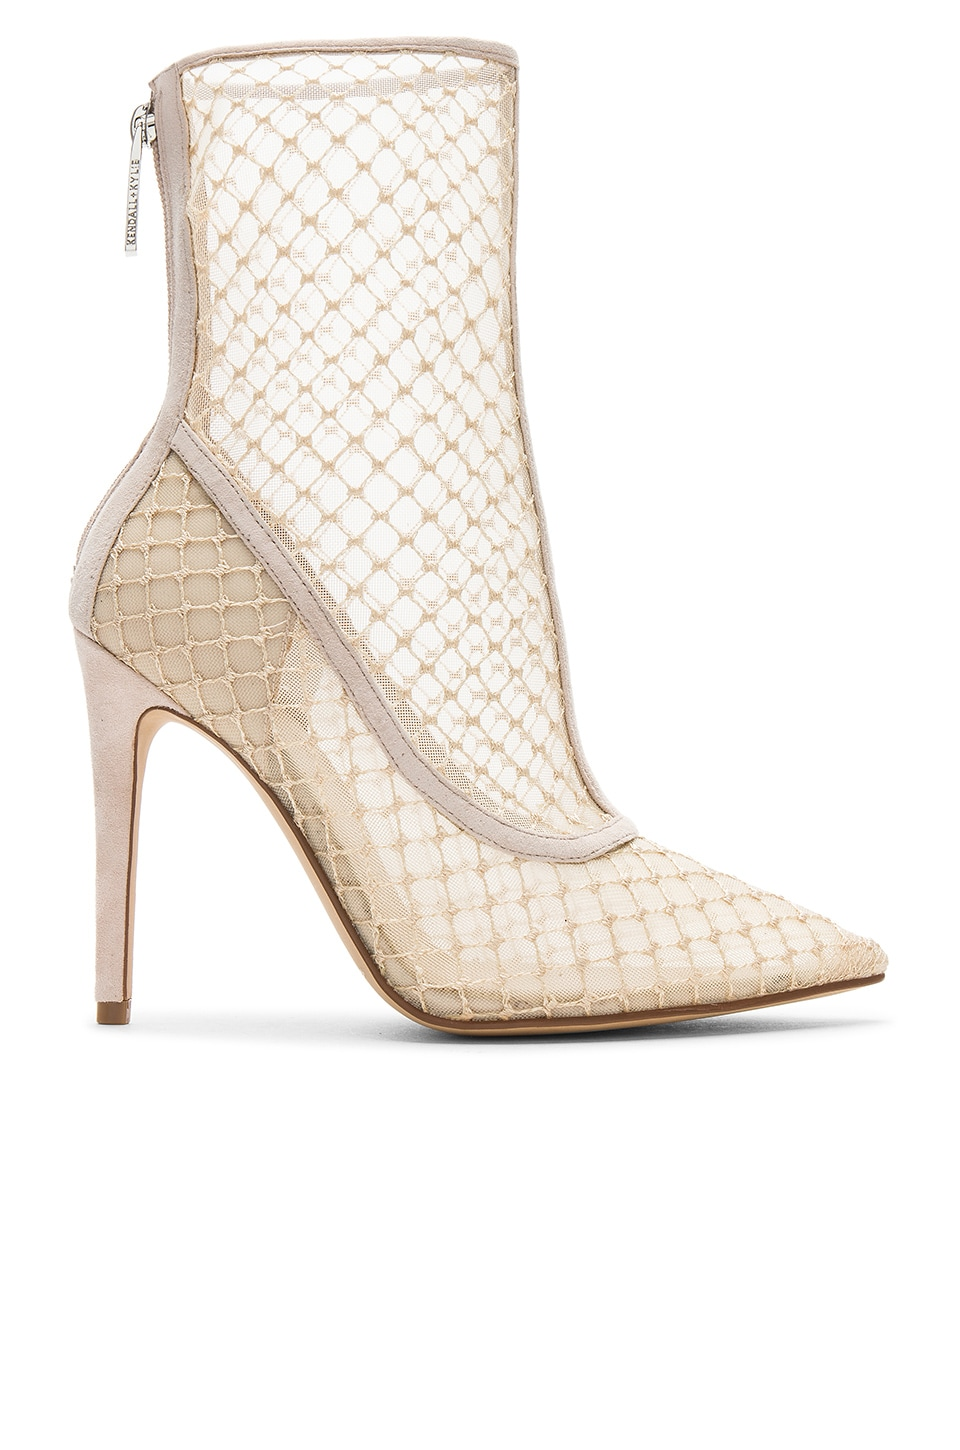 KENDALL + KYLIE Alanna Bootie in Nude & Pale Blush